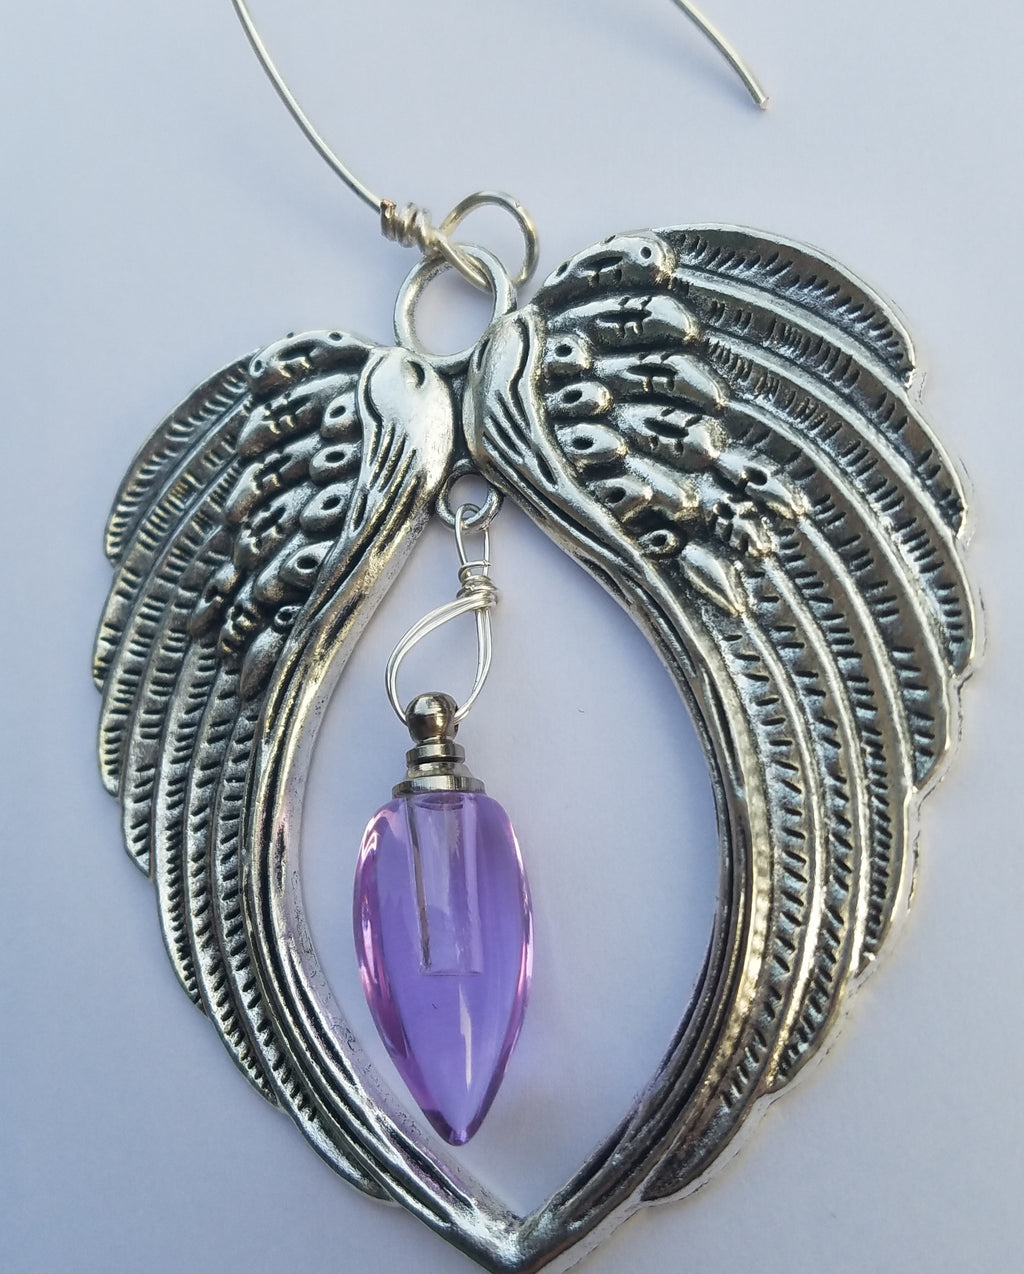 angel wing ornament urn bead suncatcher Unique Sympathy Gifts. Fill Yourself Cremation Ash Ring Lockets, Rings For Ashes, Cremation Jewelry Urn Bead Pendants, And Holiday Ornaments. Gift Wrapped and Free Shipping. Sympathy Mourning Glass Art Service. USA Handmade by Infusion Glass Human and Pet Cremation Ash Remembrance Urns AshesInfusedGlass.com